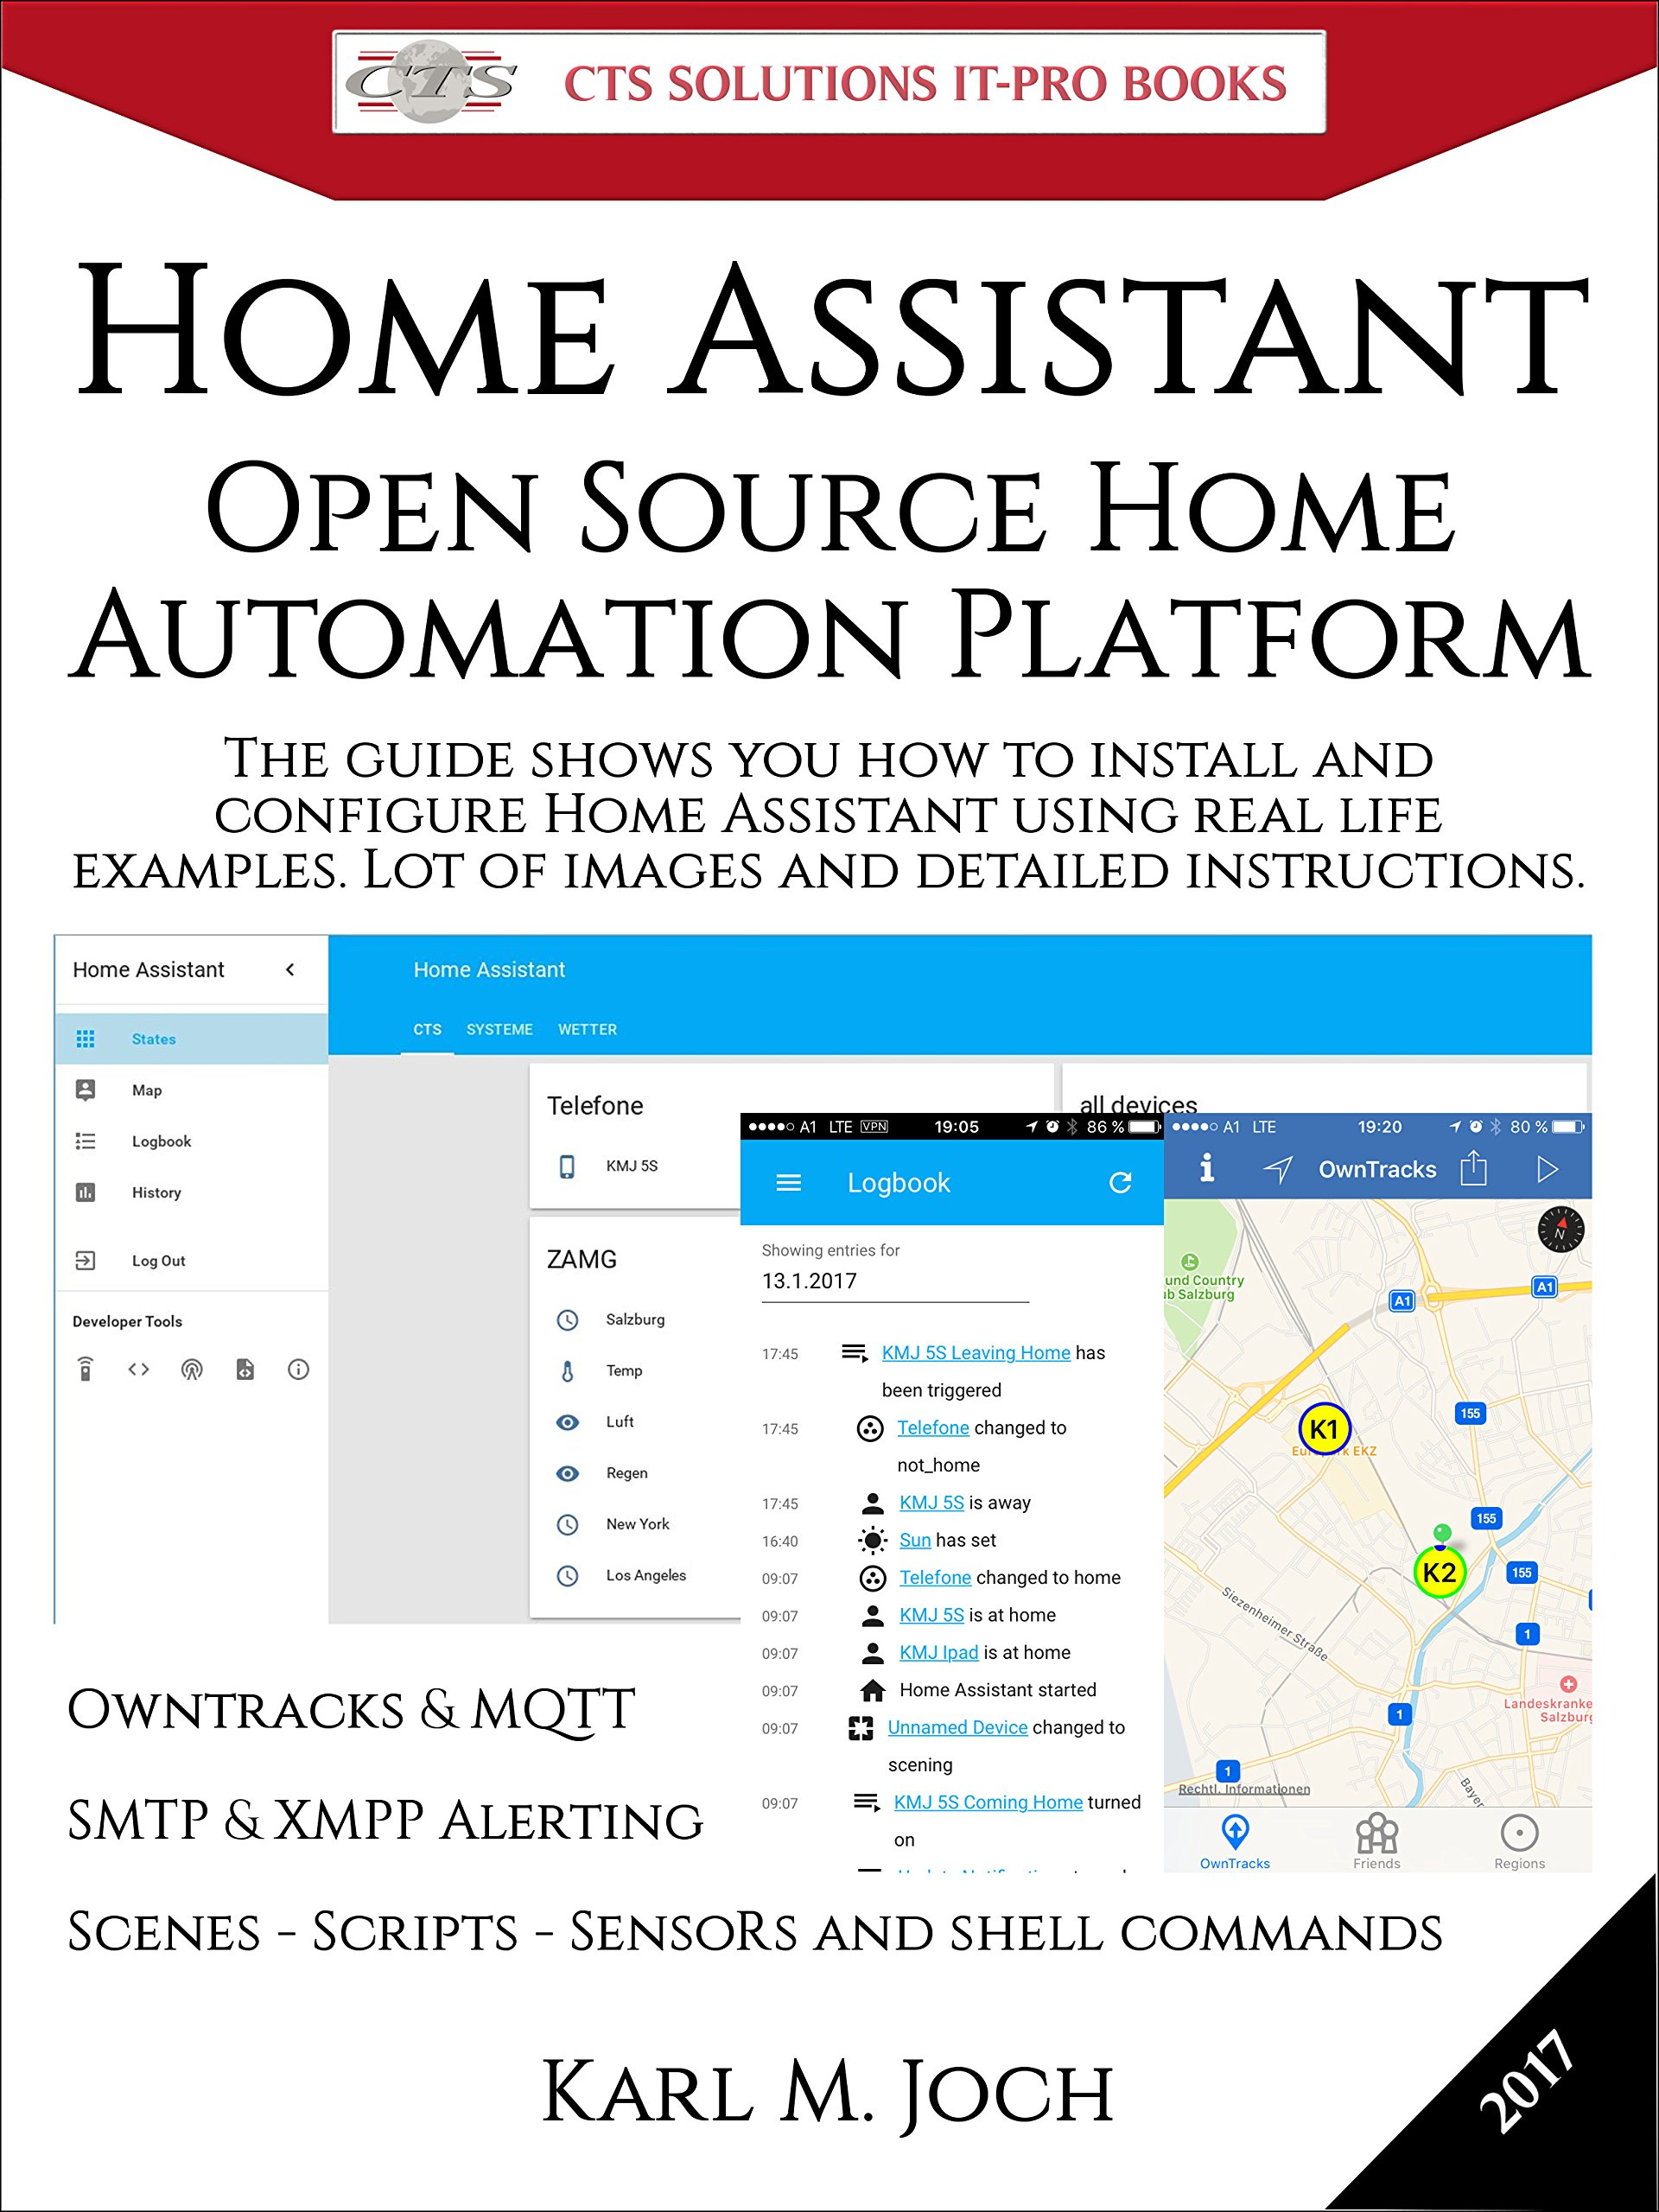 Home Assistant  Open Source Home Automation Platform For IoT  Internet Of Things  And More  CTS SOLUTIONS IT PRO E Books Book 6   English Edition